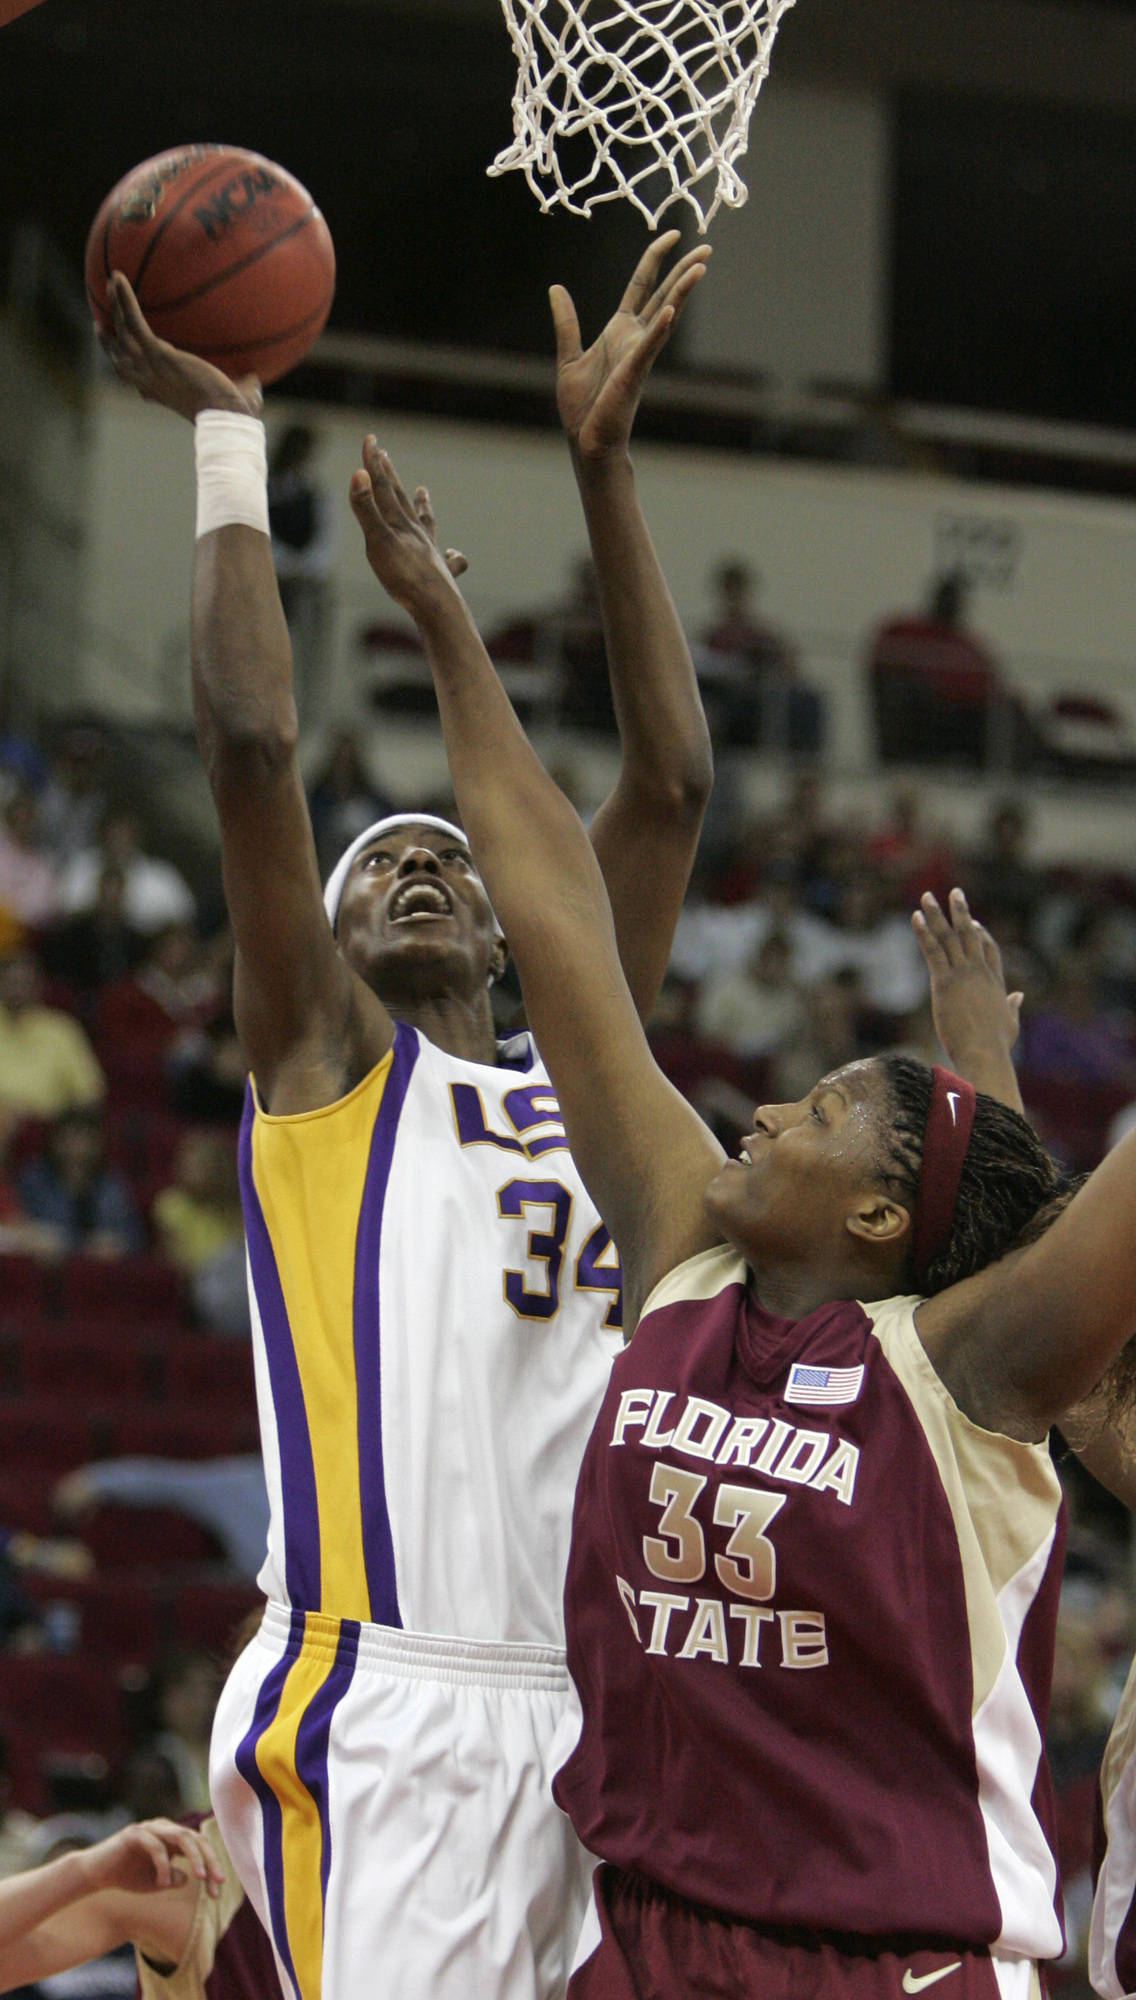 Louisiana State center Sylvia Fowles, left, shoots over Florida State center Britany Miller in the first half of an NCAA women's basketball tournament regional semifinal in Fresno, Calif., Saturday, March 24, 2007. (AP Photo/Rich Pedroncelli)